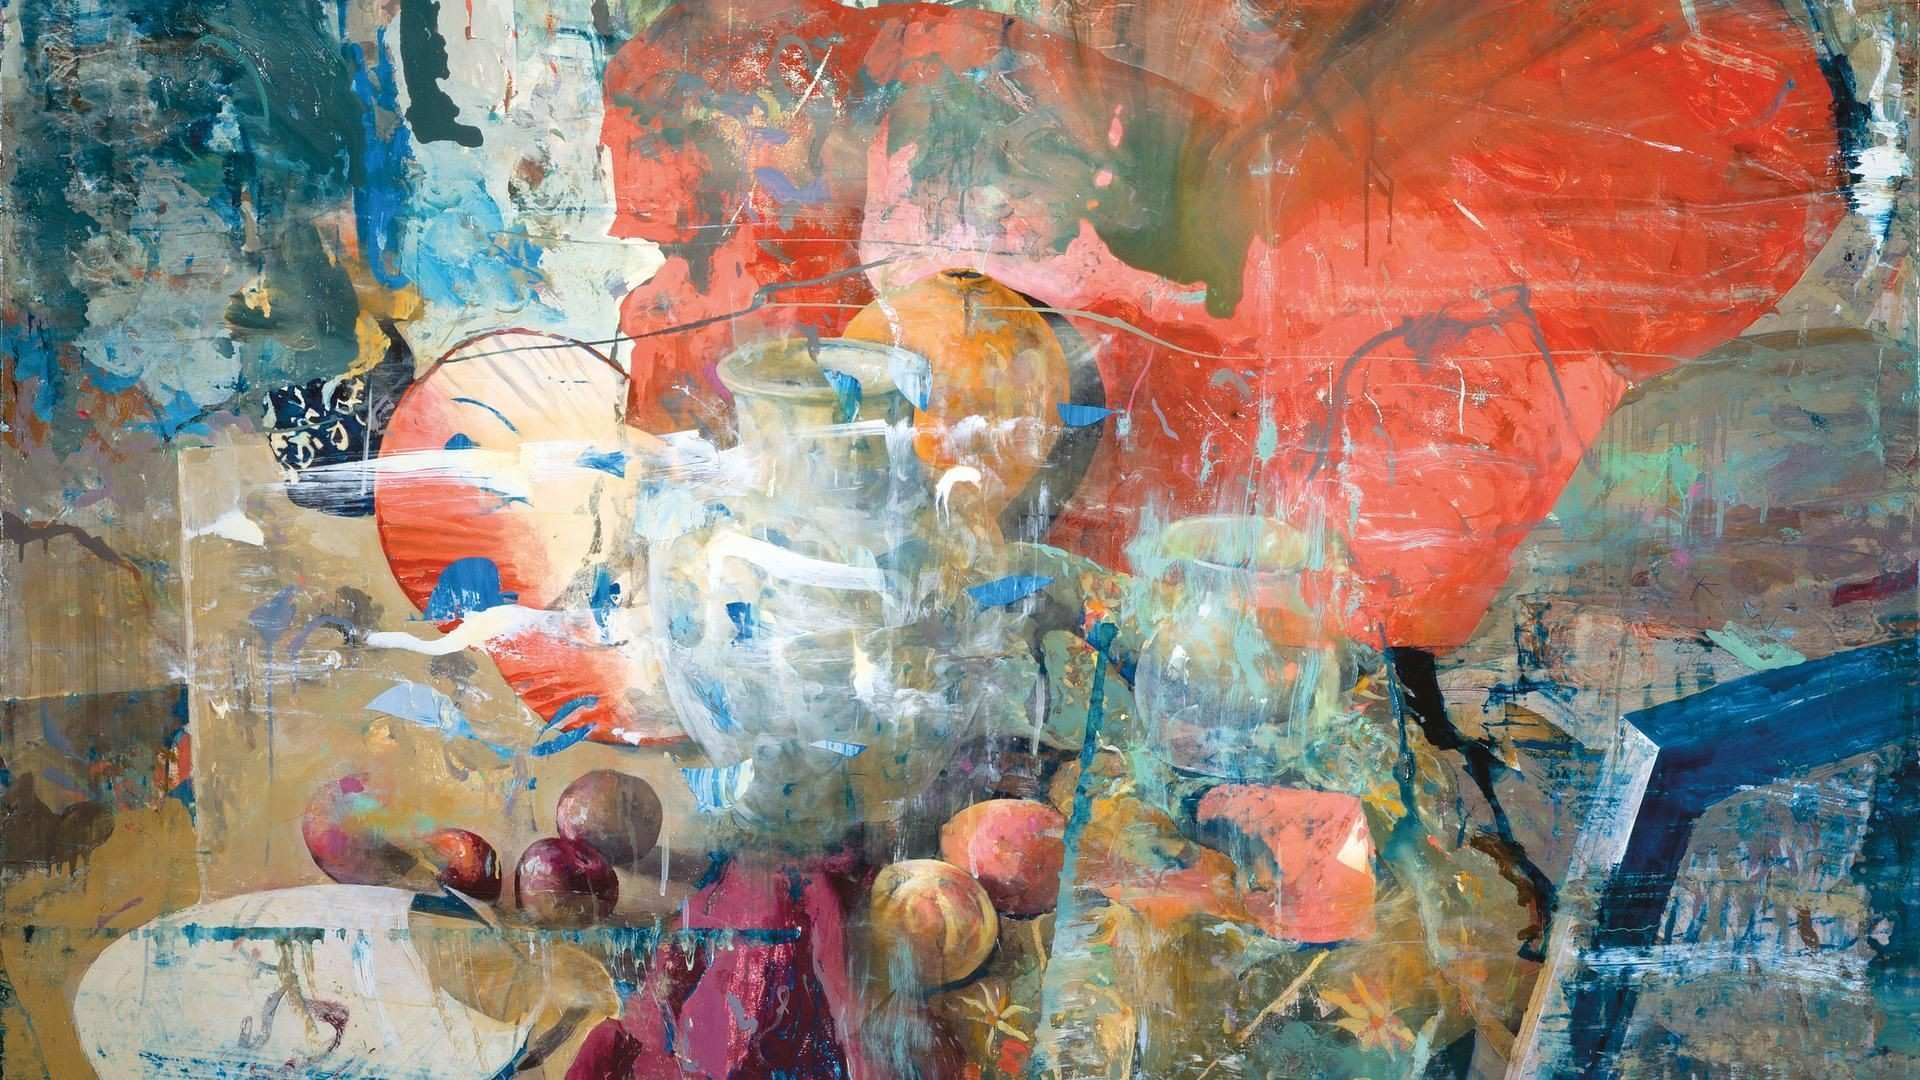 Pin by Rafael Ghiraldelli on Contemporary painting